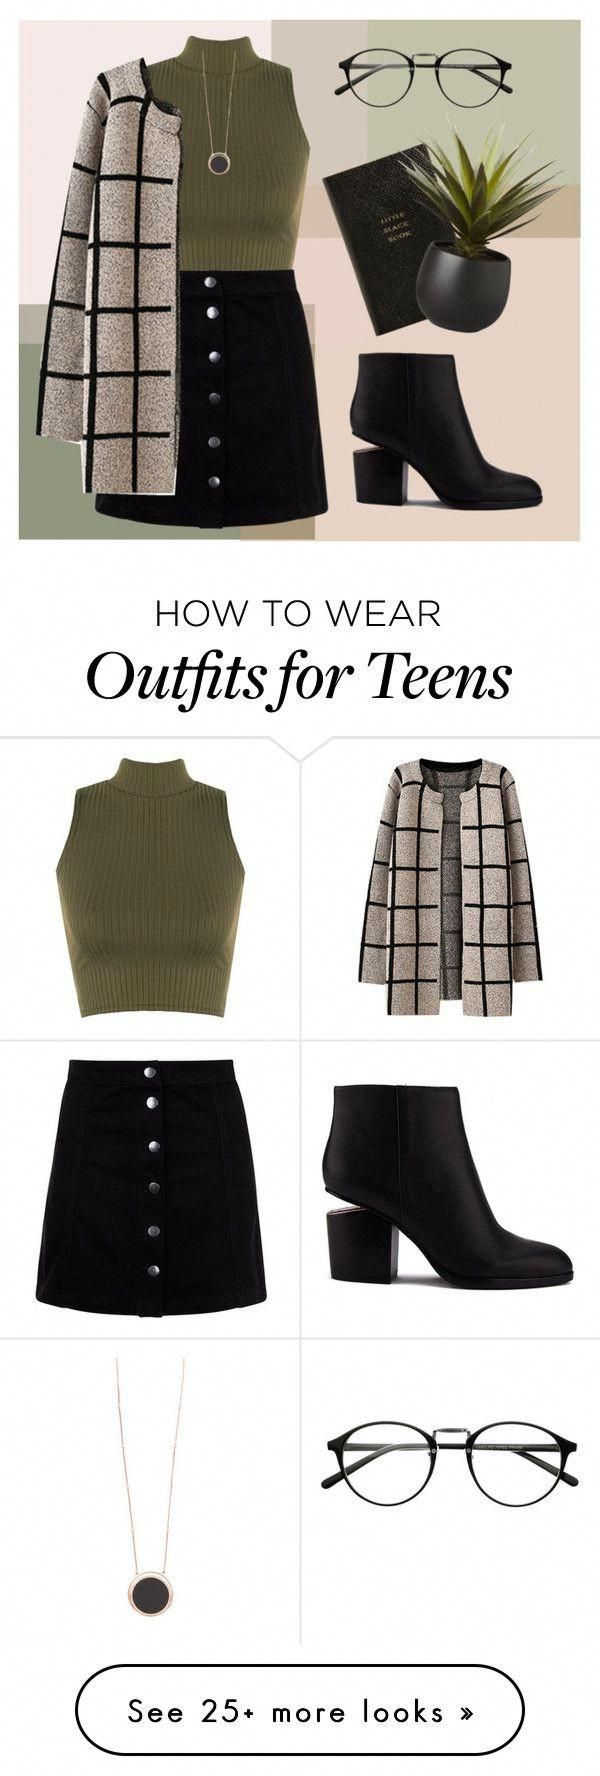 Teenage Outfits 2016 Cheap Trendy Teenage Clothing New Fashion For Girls 2016 20181110